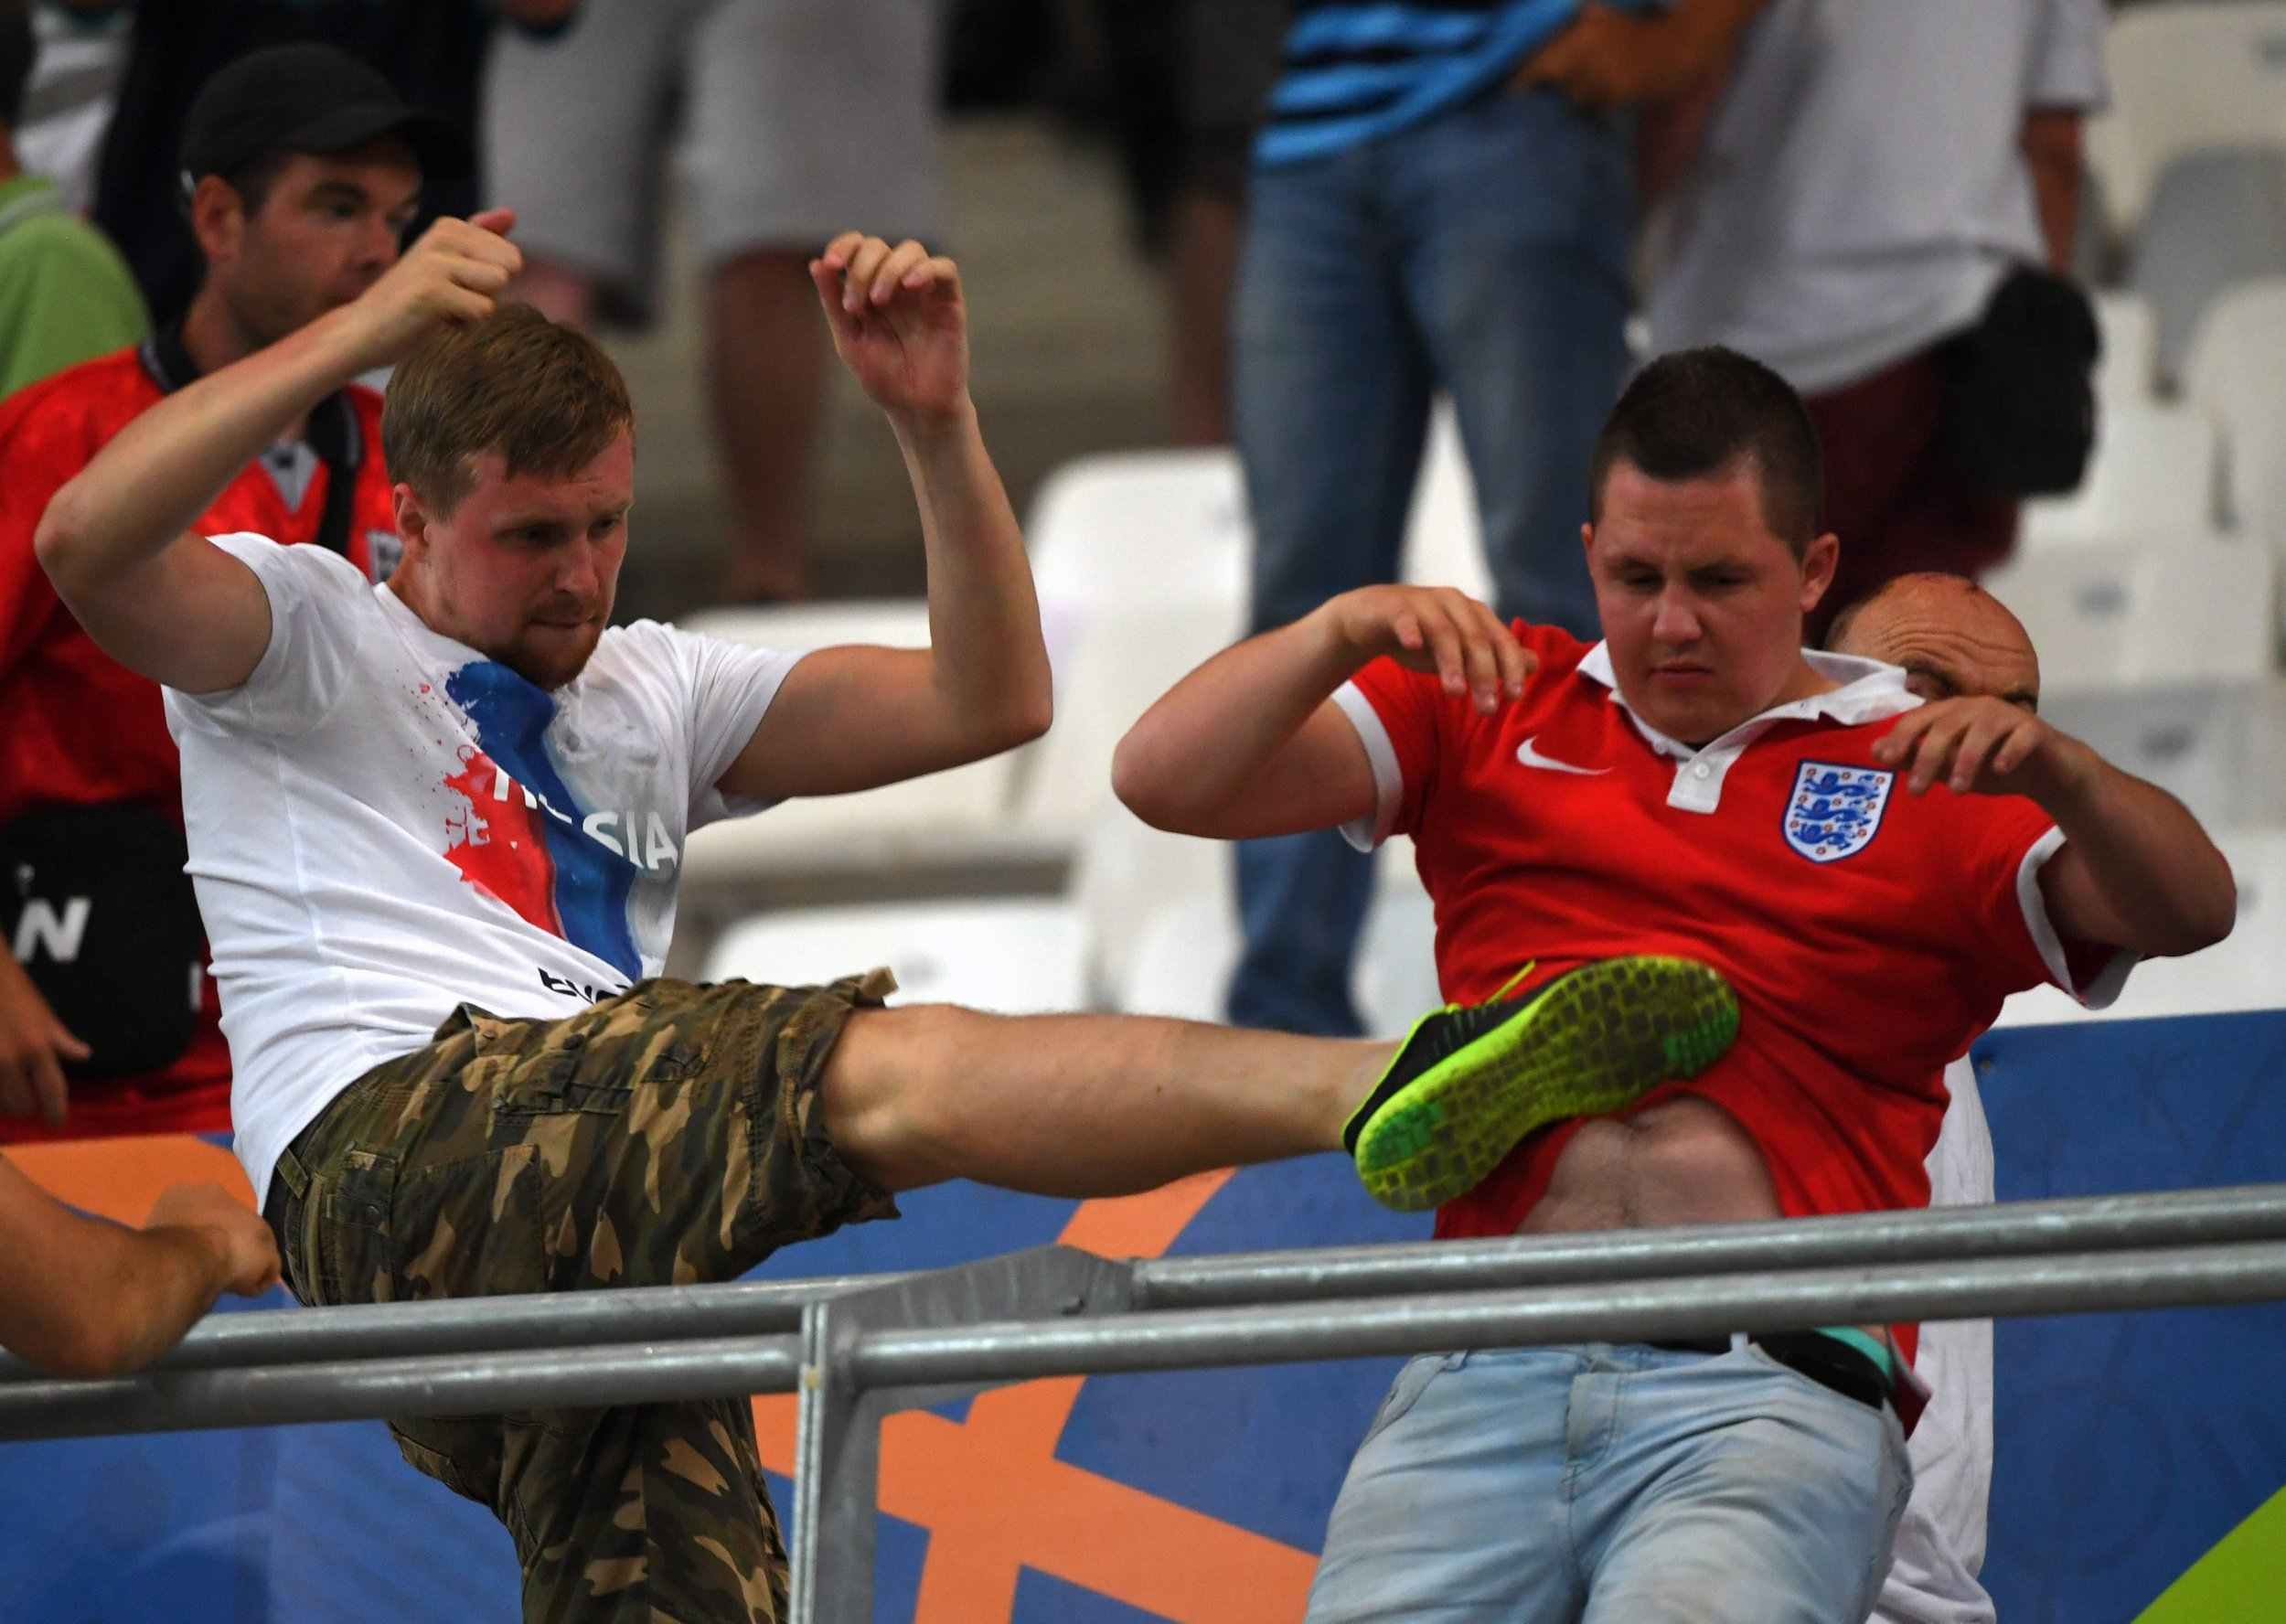 epaselect epa05358400 A Russia supporter (L) clashes with an England supporter (R) in the stands during the UEFA EURO 2016 group B preliminary round match between England and Russia at Stade Velodrome in Marseille, France, 11 June 2016. (RESTRICTIONS APPLY: For editorial news reporting purposes only. Not used for commercial or marketing purposes without prior written approval of UEFA. Images must appear as still images and must not emulate match action video footage. Photographs published in online publications (whether via the Internet or otherwise) shall have an interval of at least 20 seconds between the posting.) EPA/PETER POWELL EDITORIAL USE ONLY